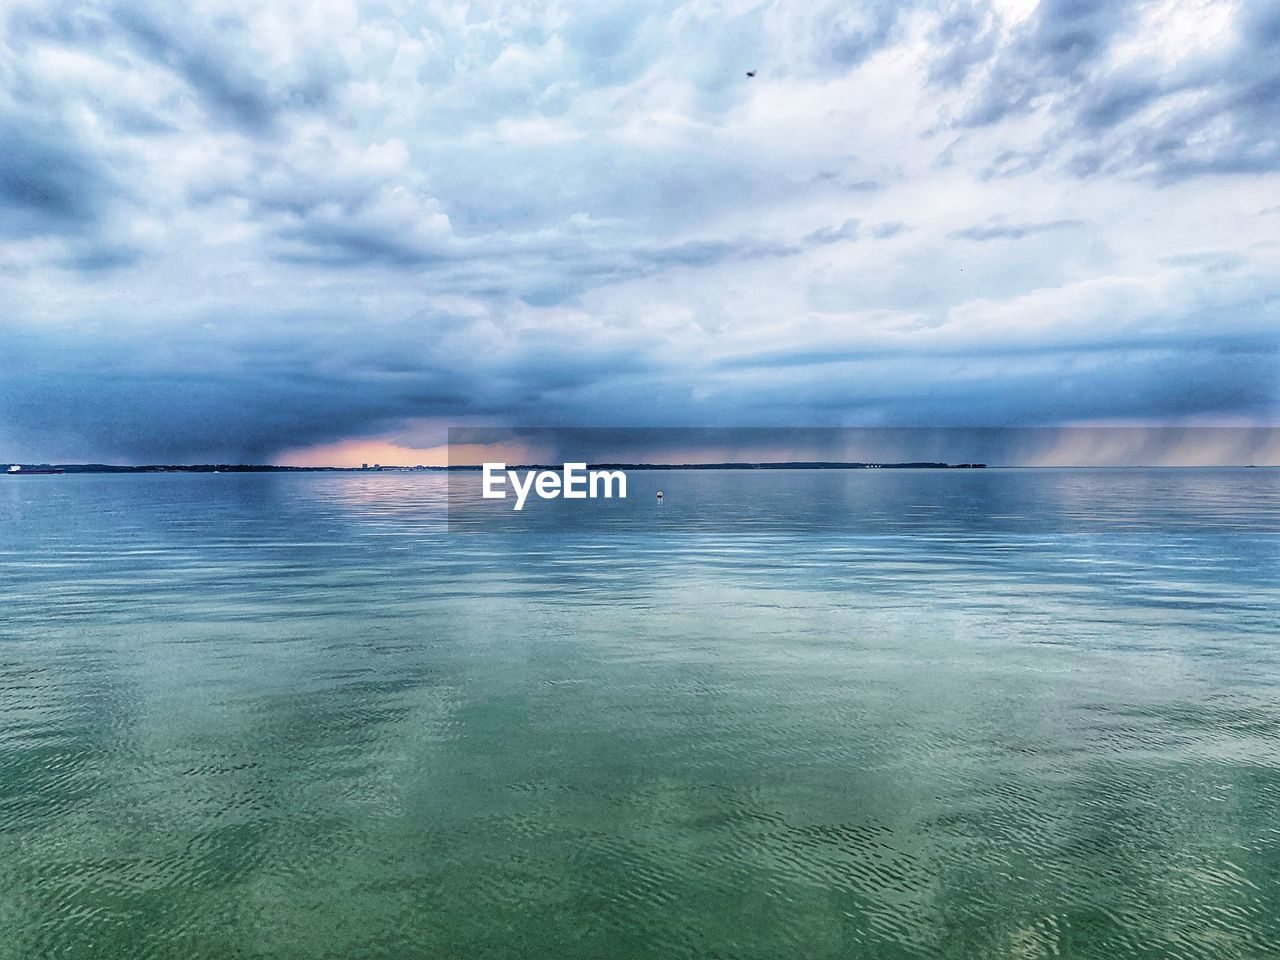 sky, cloud - sky, scenics - nature, beauty in nature, water, sea, tranquil scene, tranquility, waterfront, horizon over water, horizon, idyllic, nature, no people, non-urban scene, reflection, day, outdoors